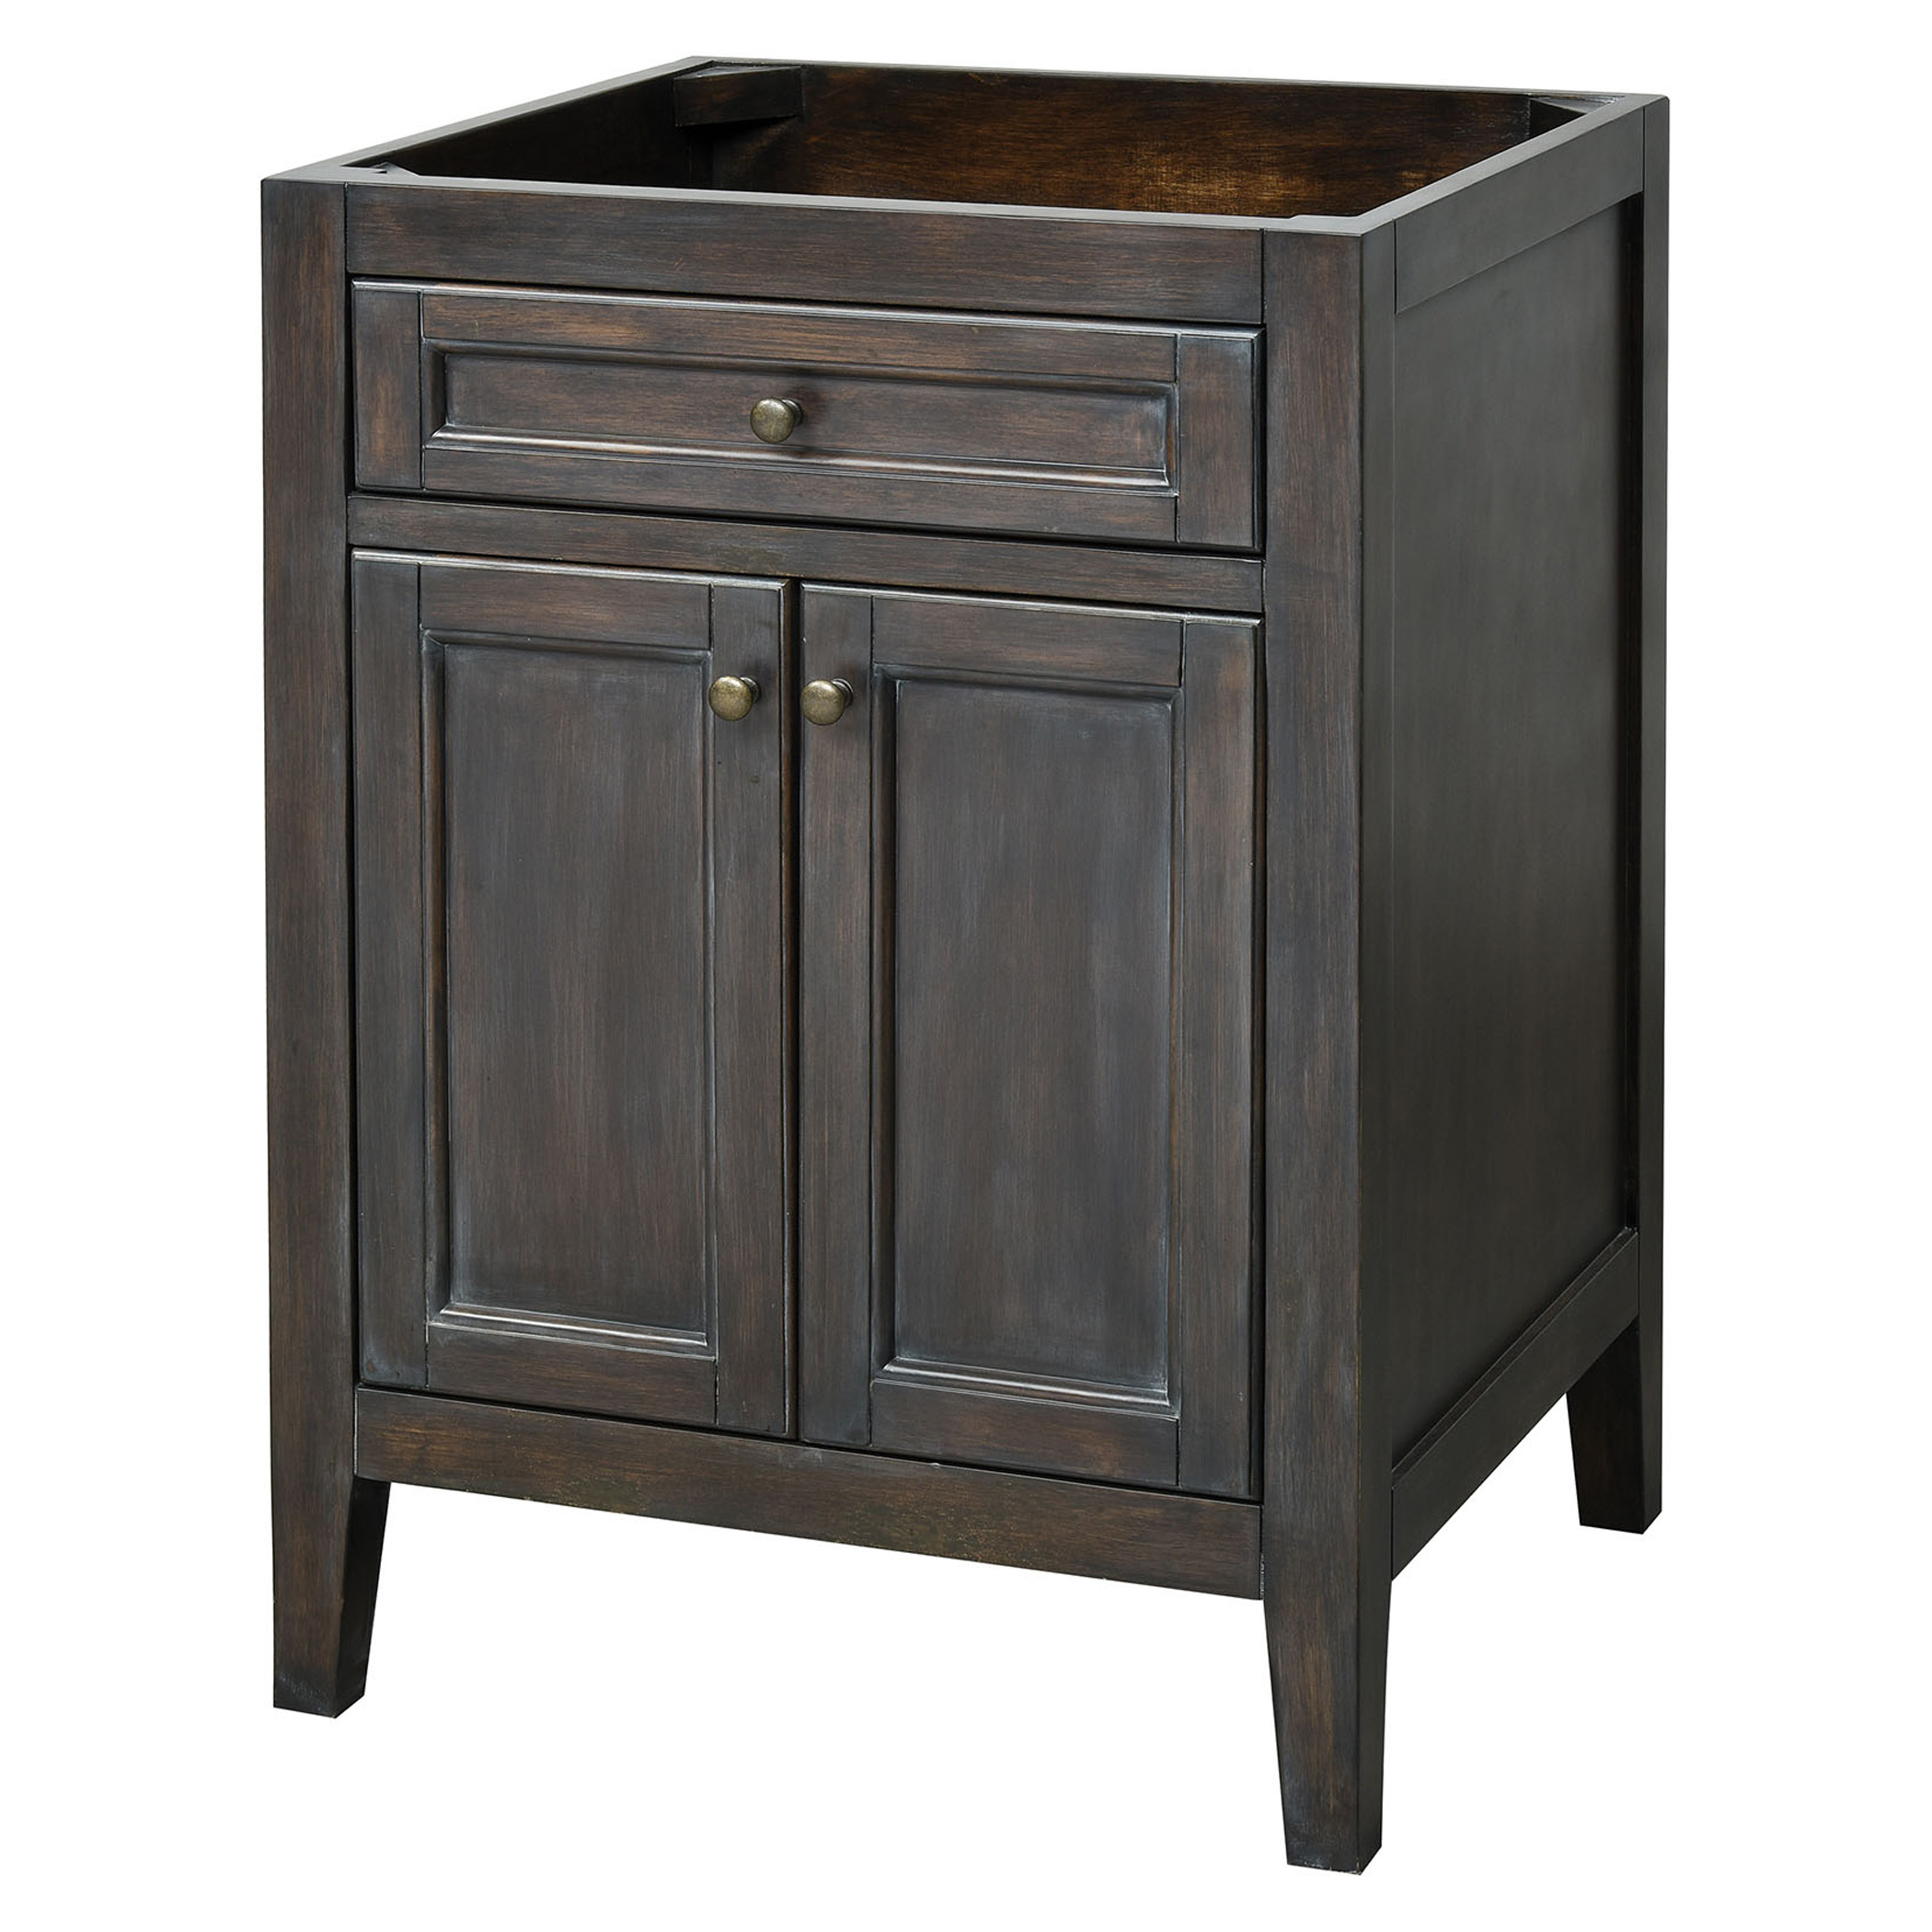 "24"" Modern Bathroom Vanity - Rustic Grey Finish"